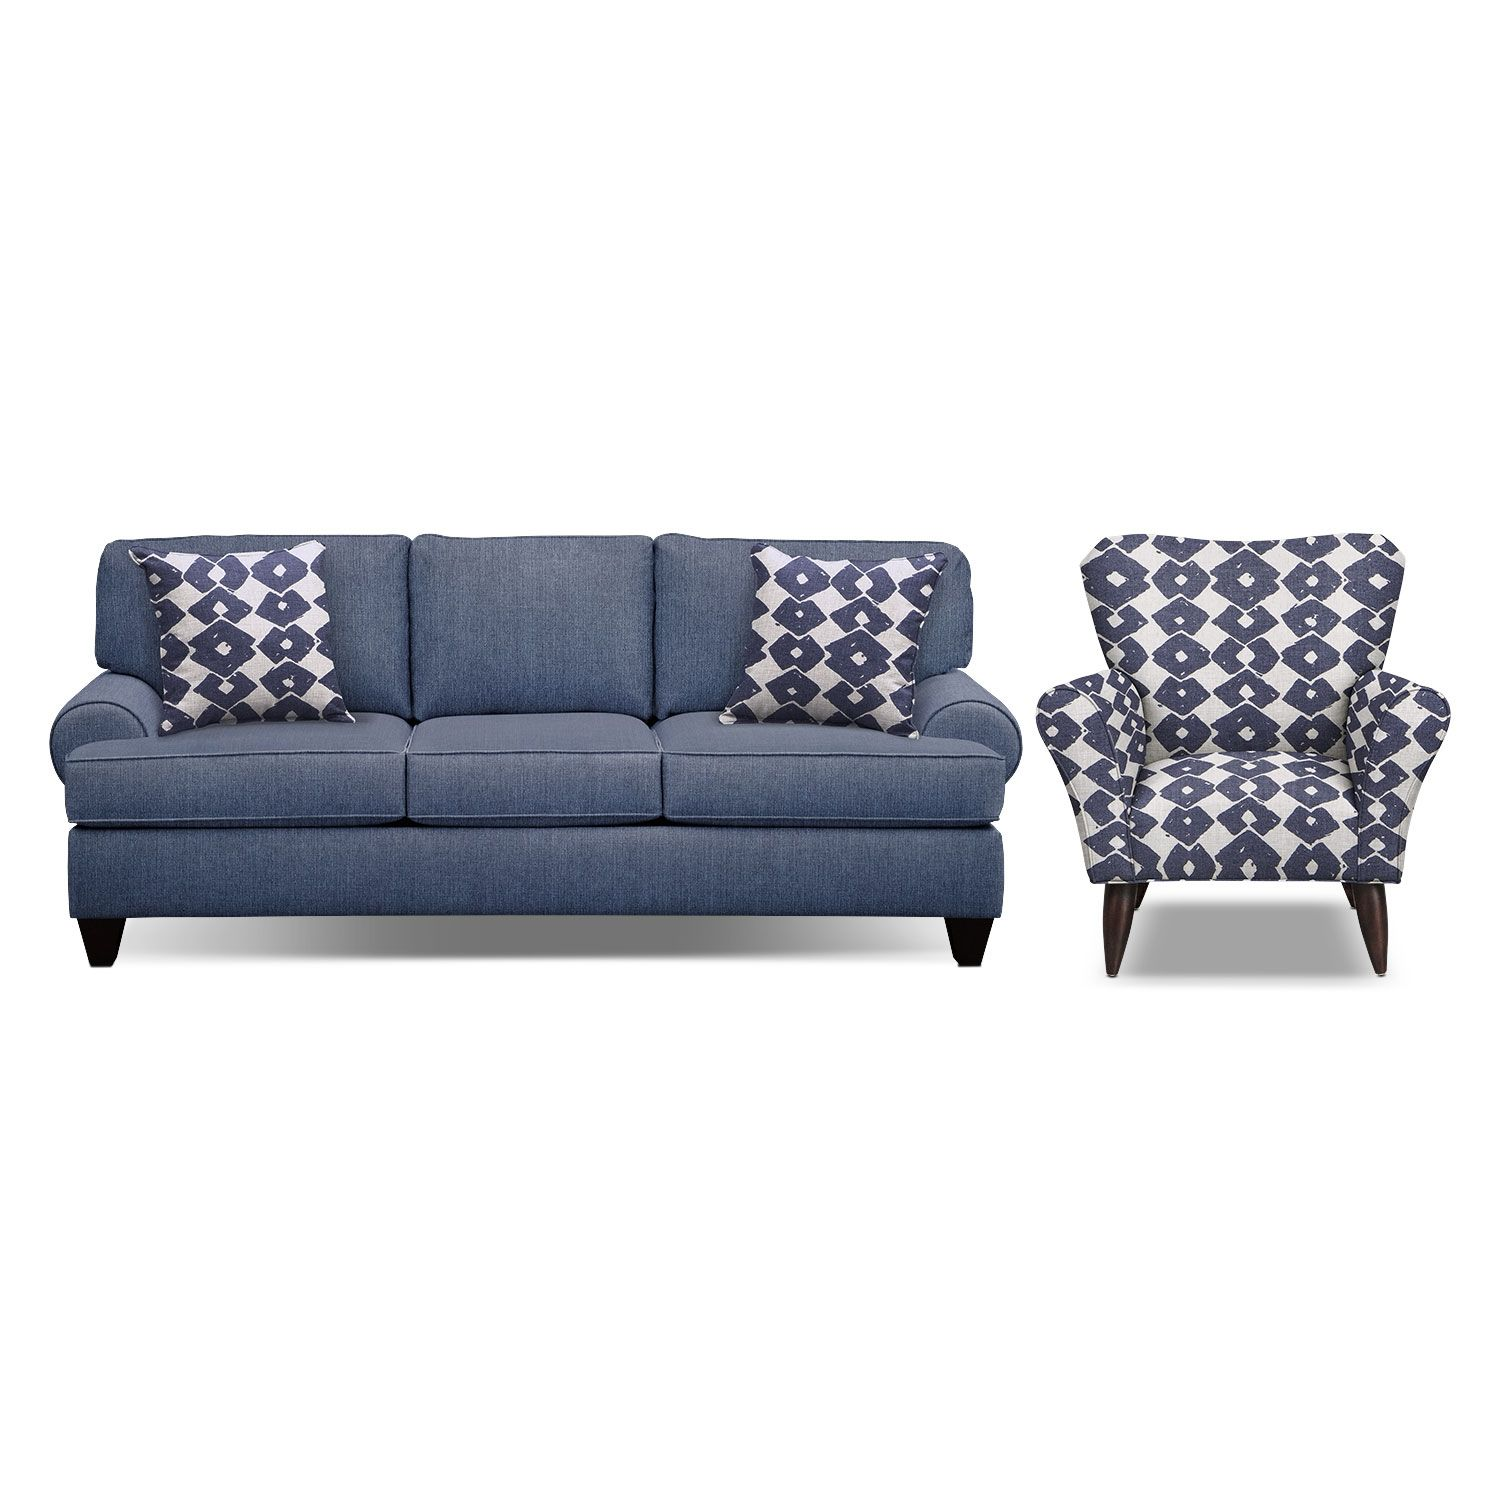 Living Room Furniture - Bailey Blue 91